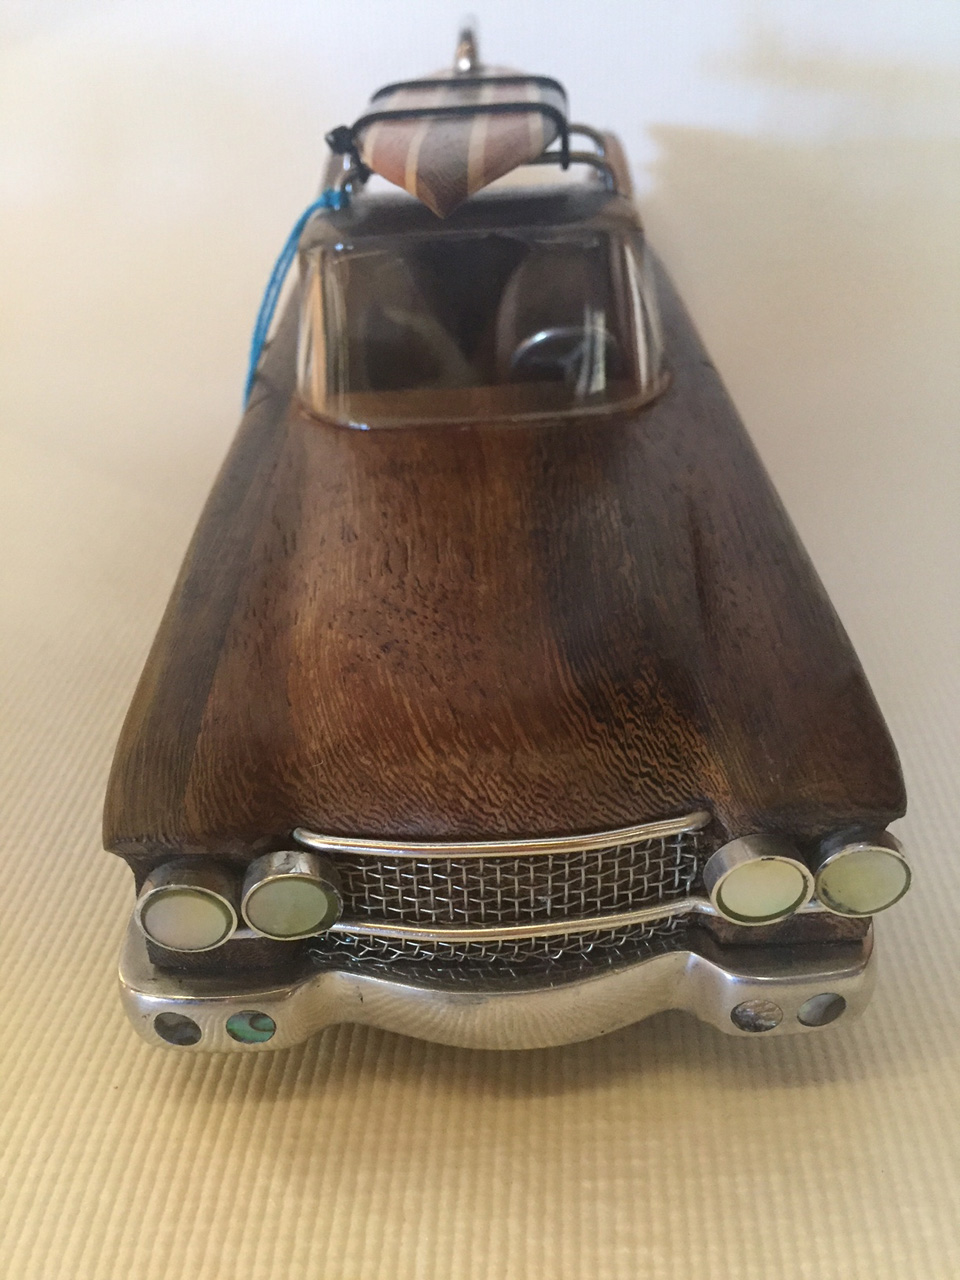 Cadillac by Doug Miller wood and metal model with surfboard